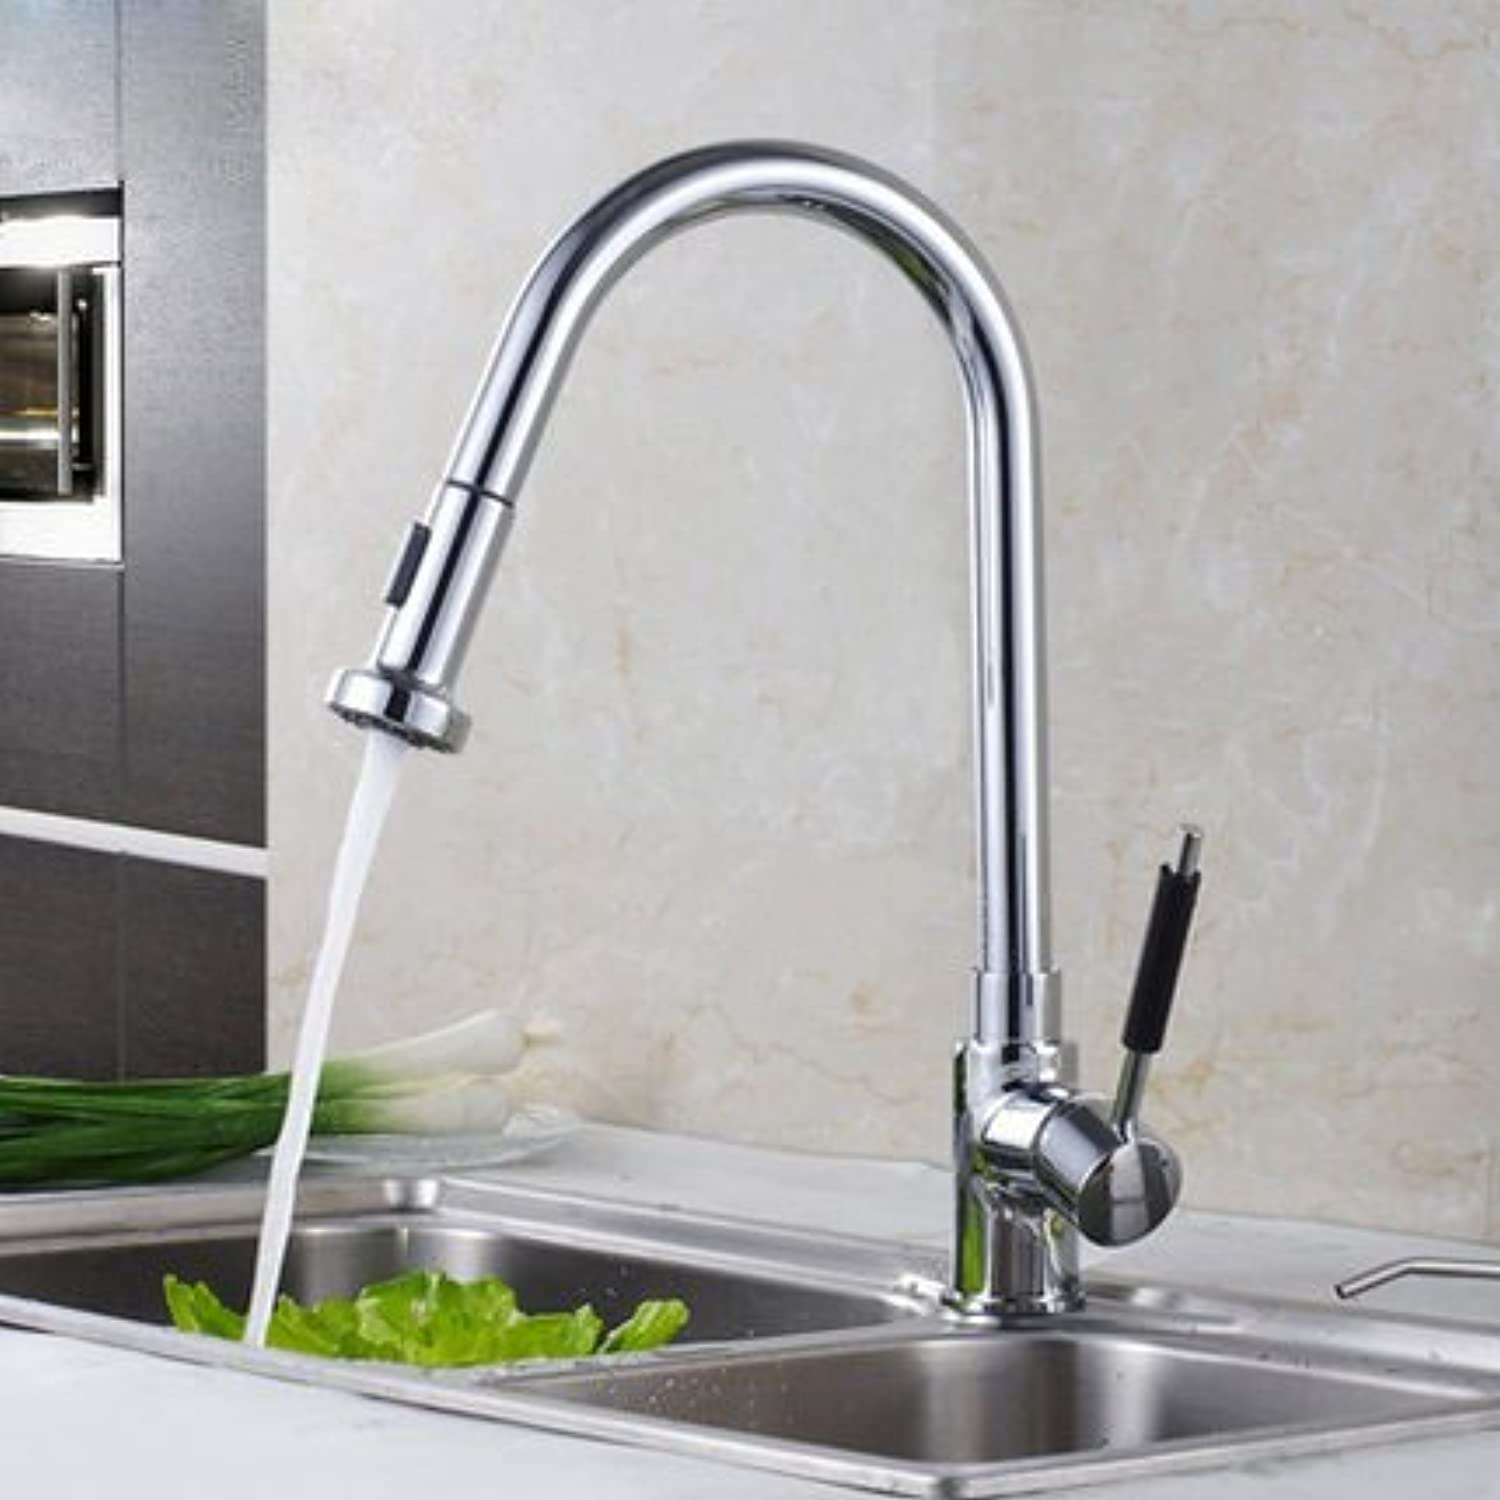 Hlluya Professional Sink Mixer Tap Kitchen Faucet The copper kitchen faucet and cold water slot pull Faucet